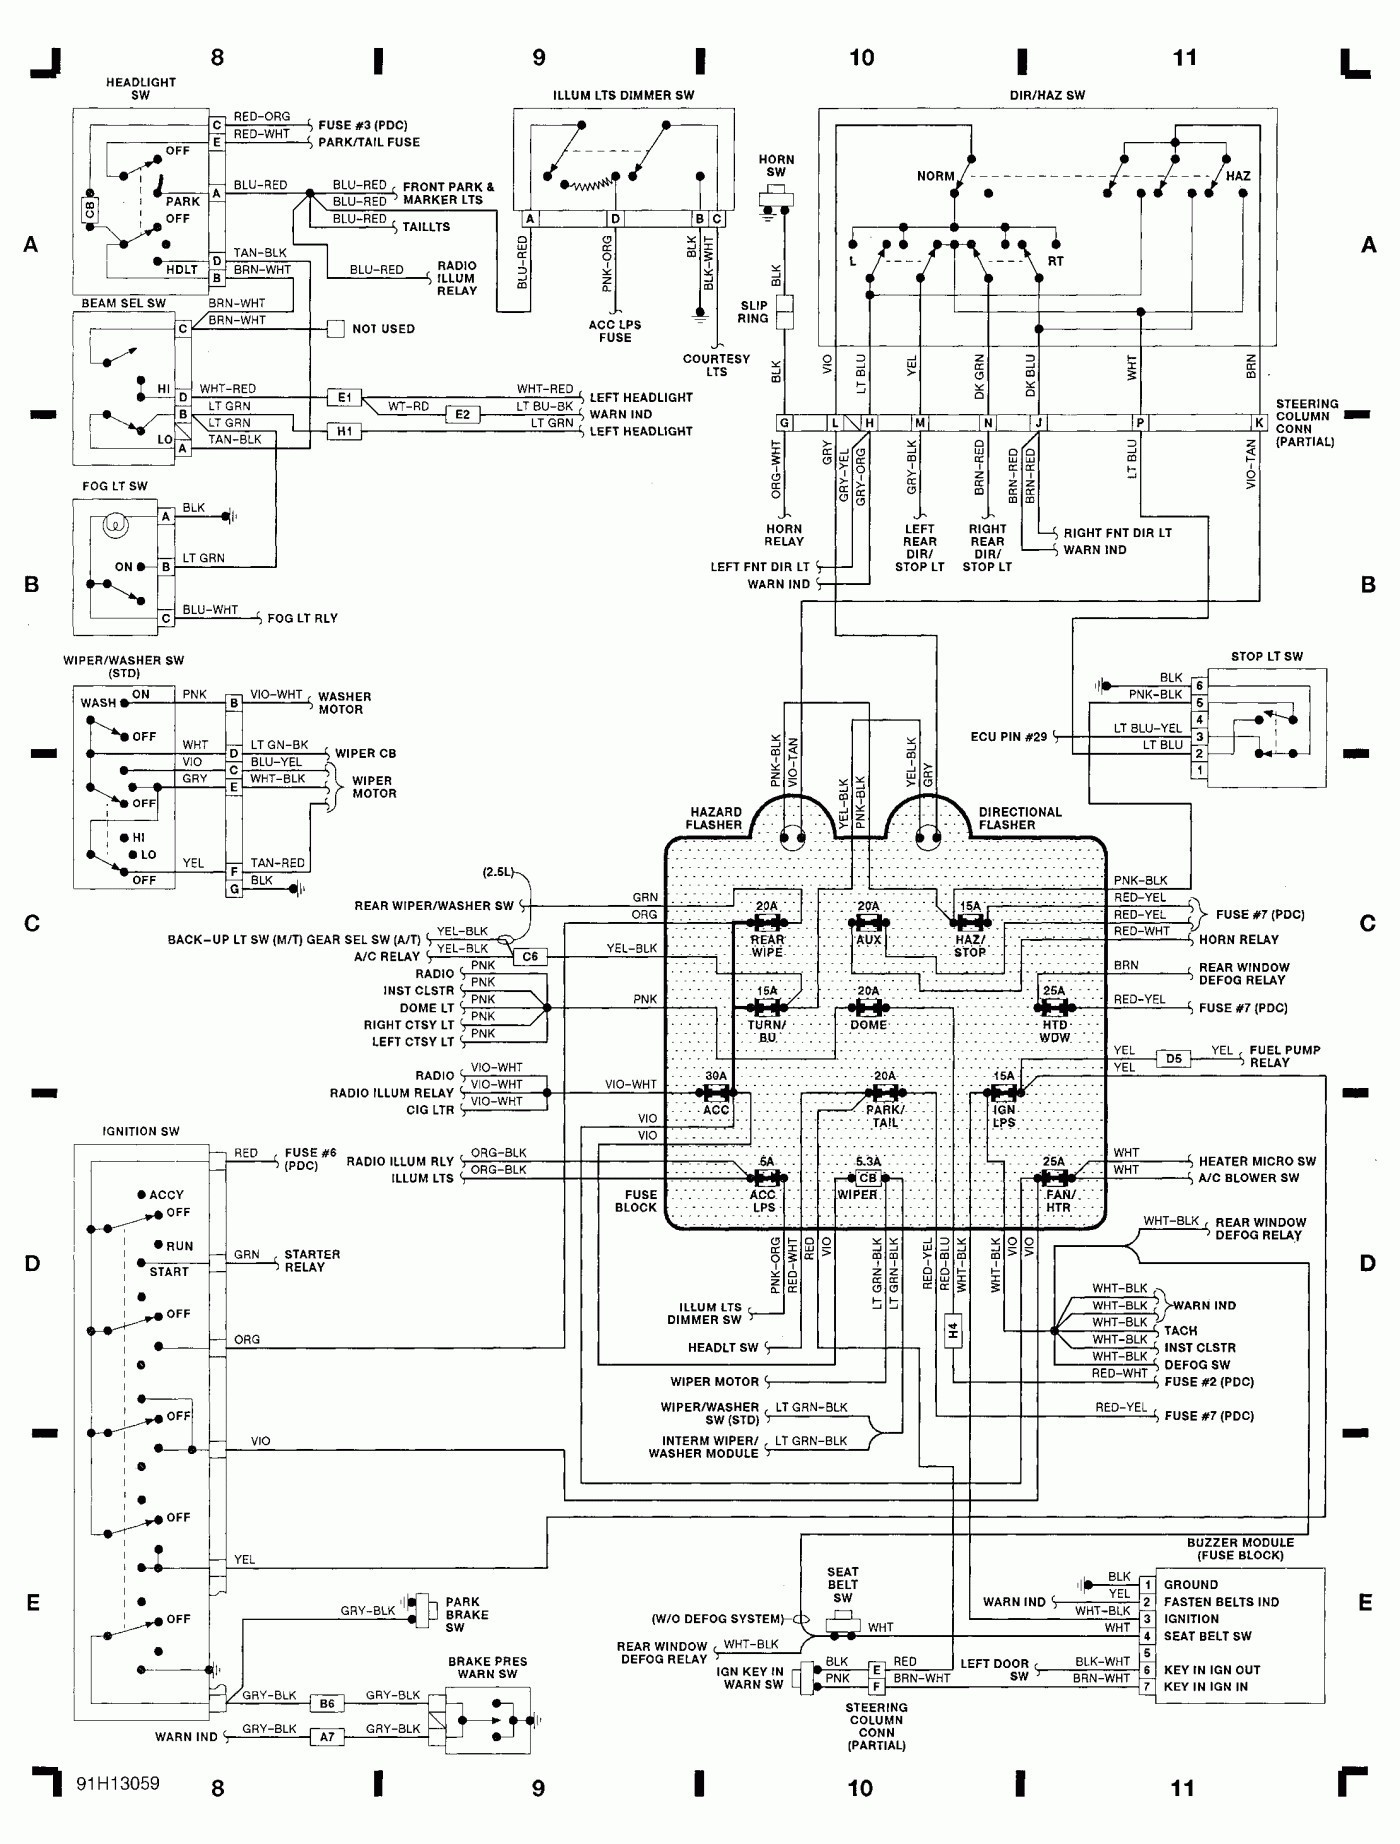 Grote 44890 Led Flasher Wiring Diagram Trusted 44891 Circuit And Hub U2022 Light